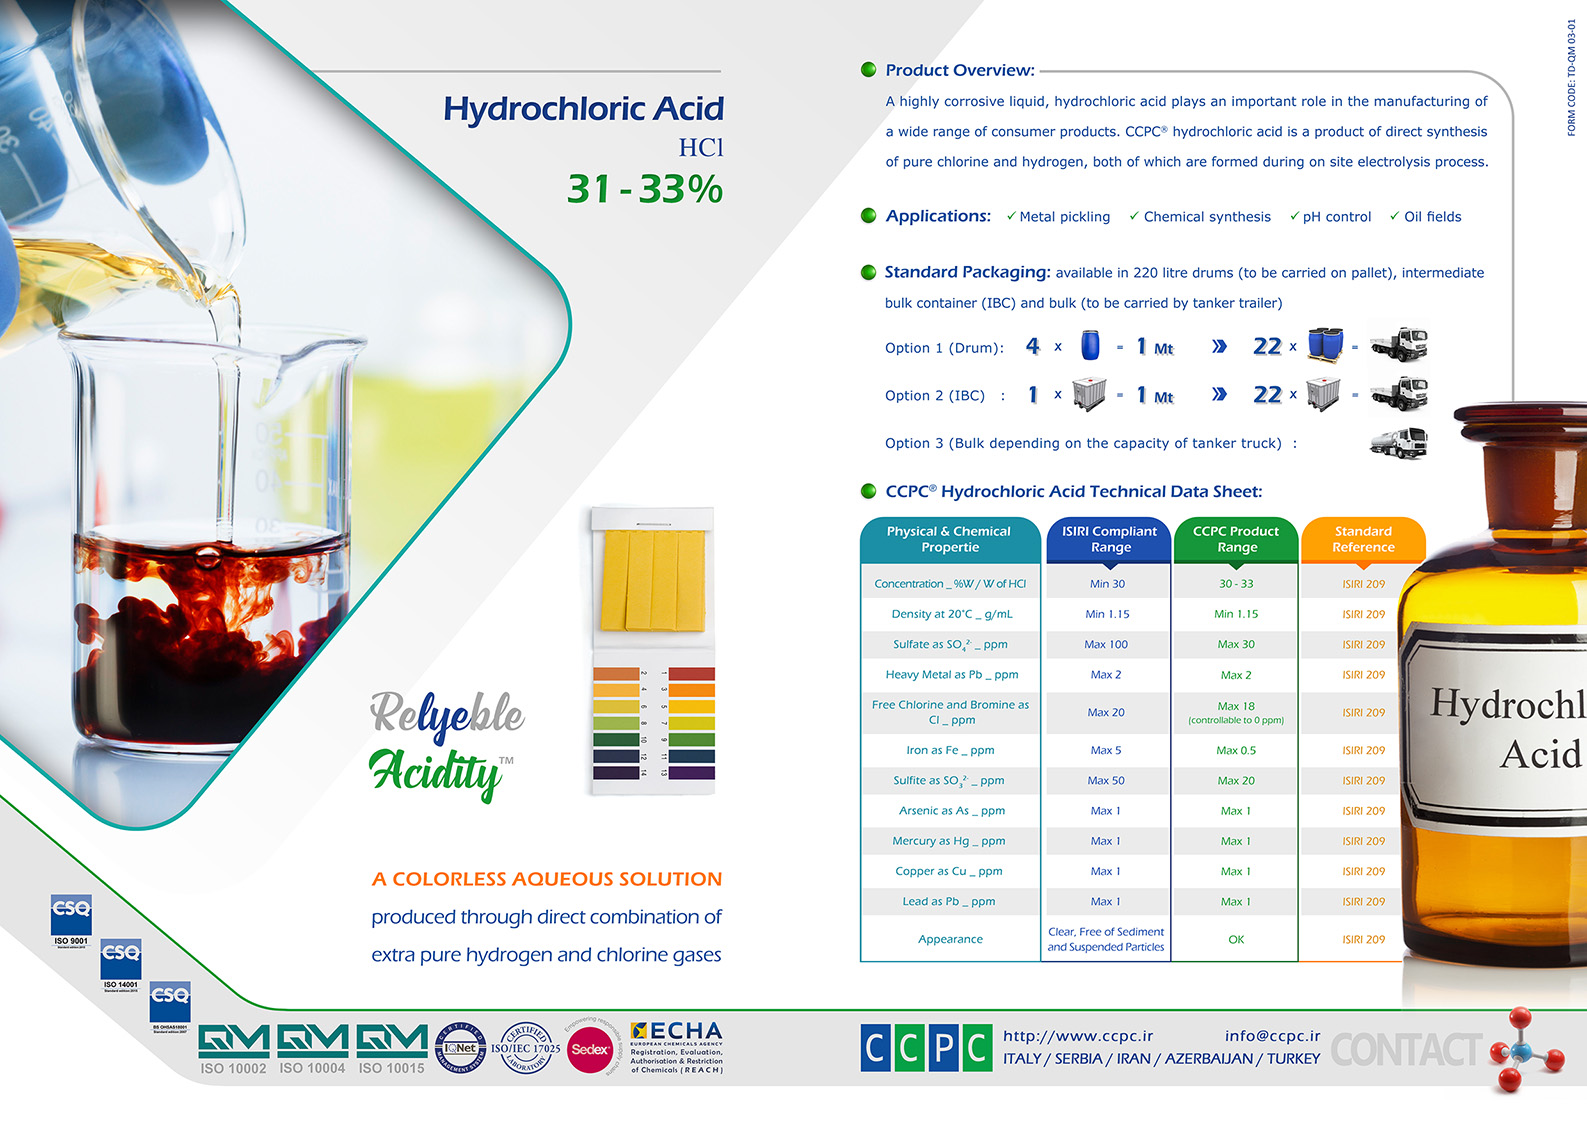 15 Hydrochloric Acid Pages